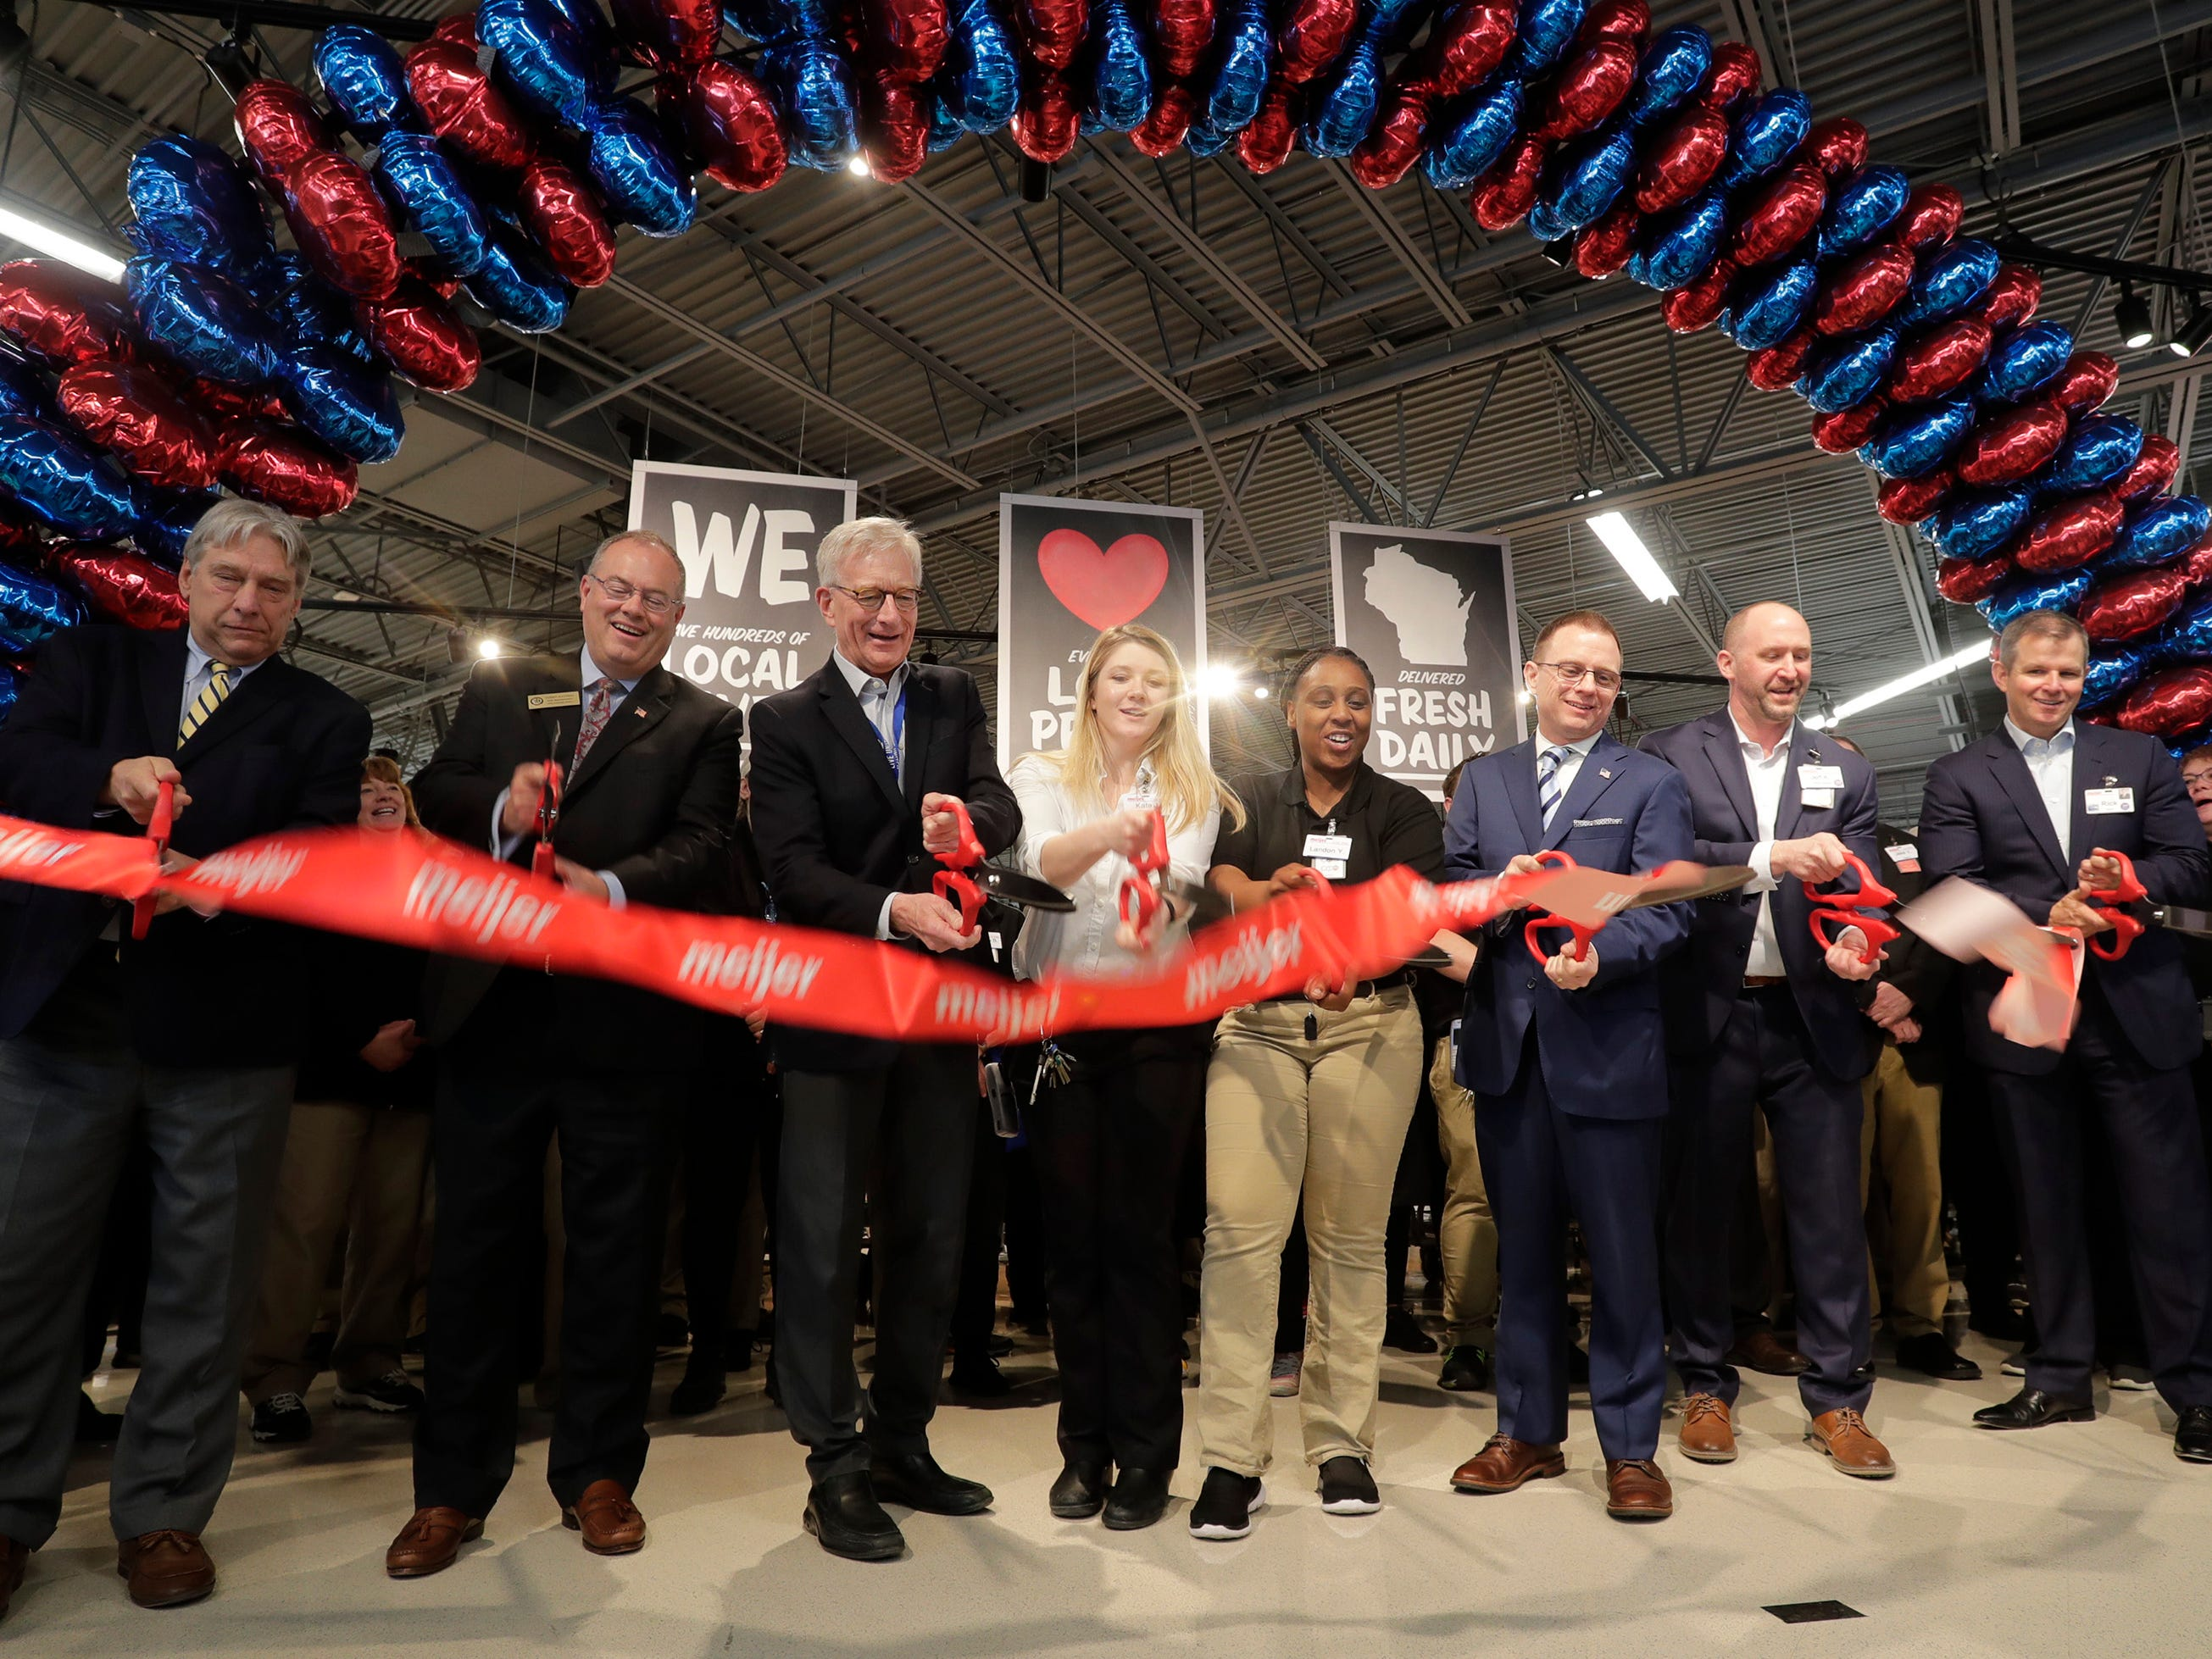 The ribbon is cut, opening the new Meijer Supercenter, Thursday April 25, 2019, in Sheboygan, Wis. The 155,000-square-foot supercenter has 300 employees on opening day. From Left: Brandon Scholz, Wisconsin Grocers Assn; State Rep. Terry Katsma; Hank Meijer, executive chairman of Meijer; Kate Joy, service team leader; Landon Young, cashier; Todd Wolf, Sheboygan common council president; Jeff Kietzman, store director; and Rick Keys.